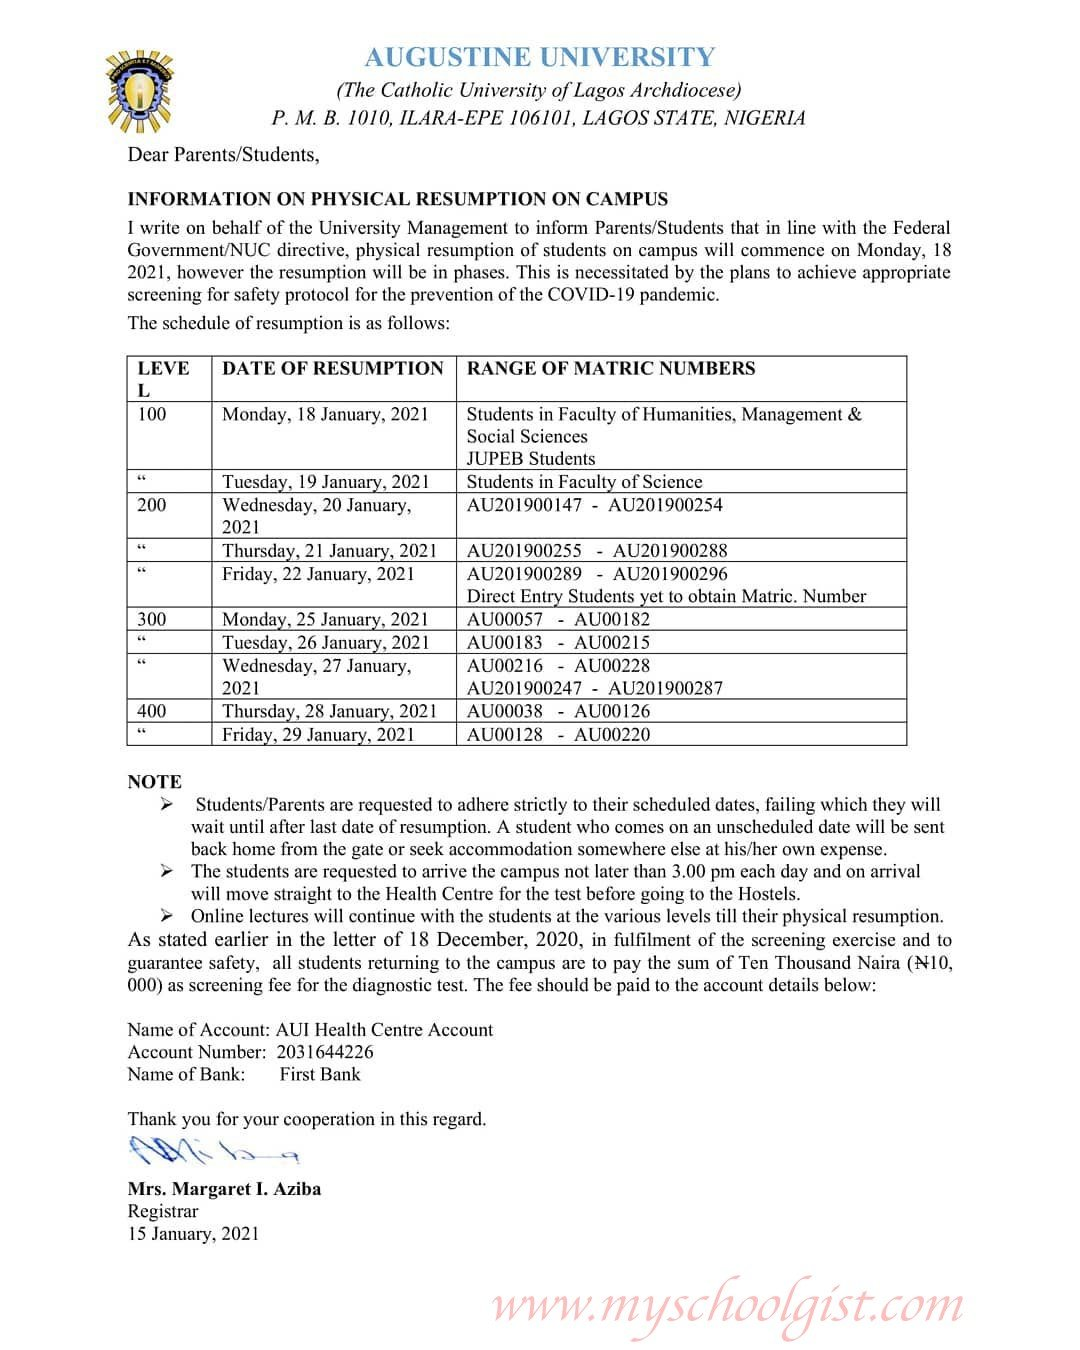 Augustine University Physical Resumption on Campus